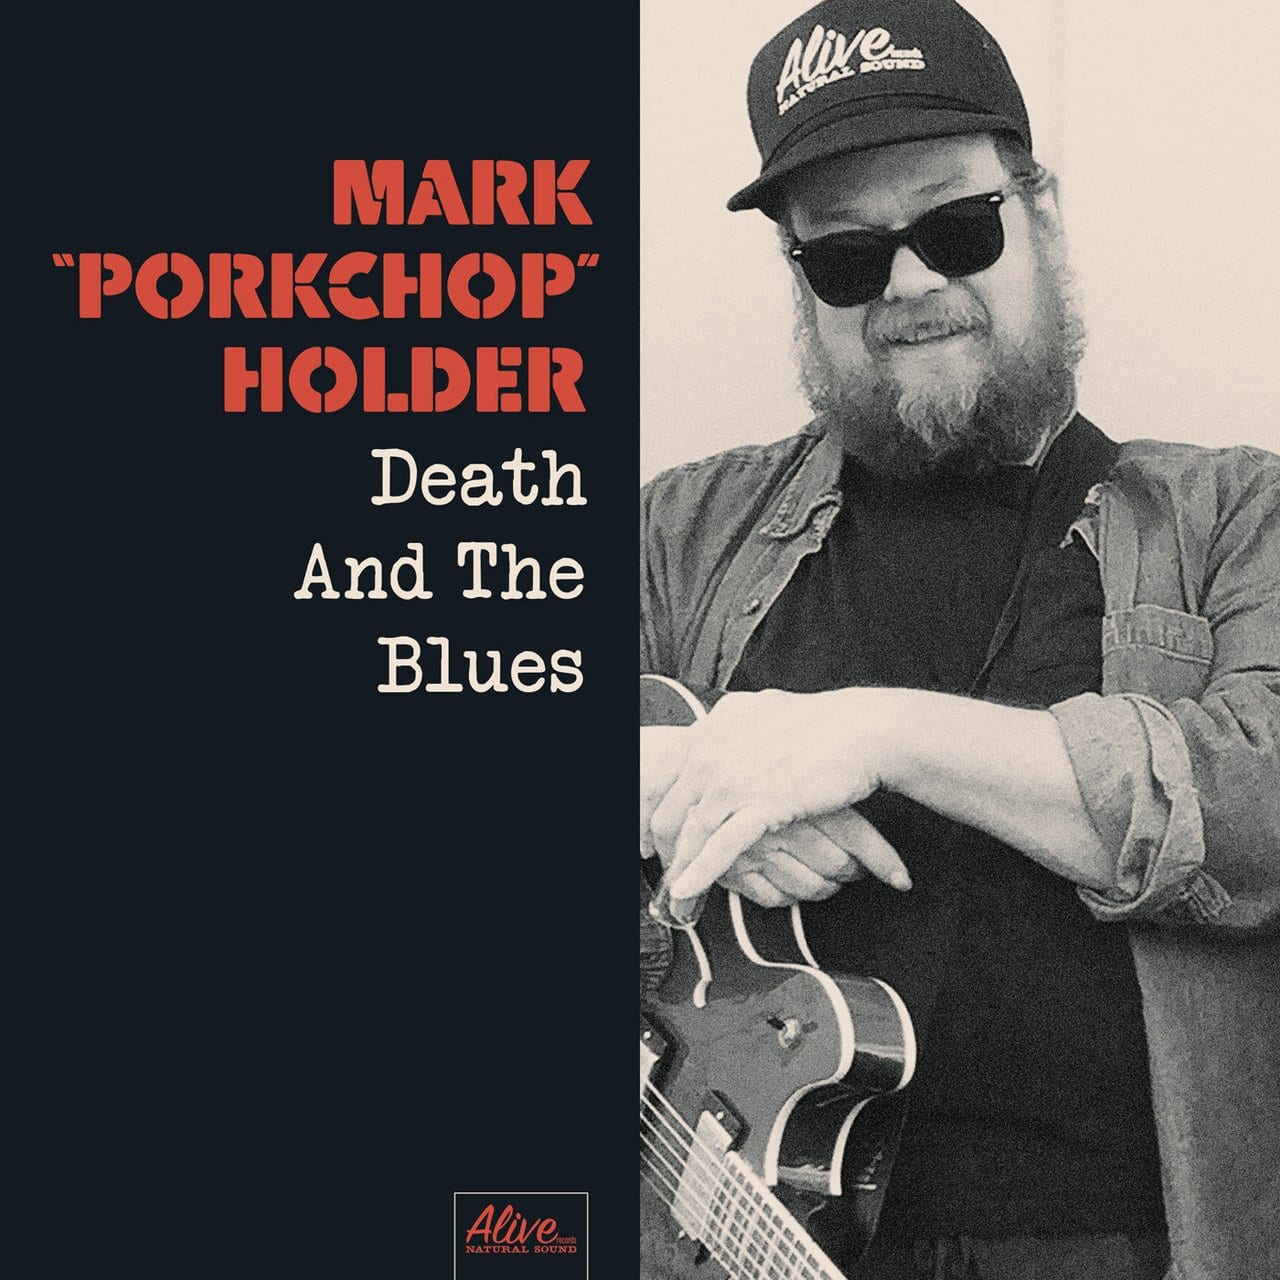 Mark Porkchop Holder - Death And The Blues [LP] - Urban Vinyl | Records, Headphones, and more.